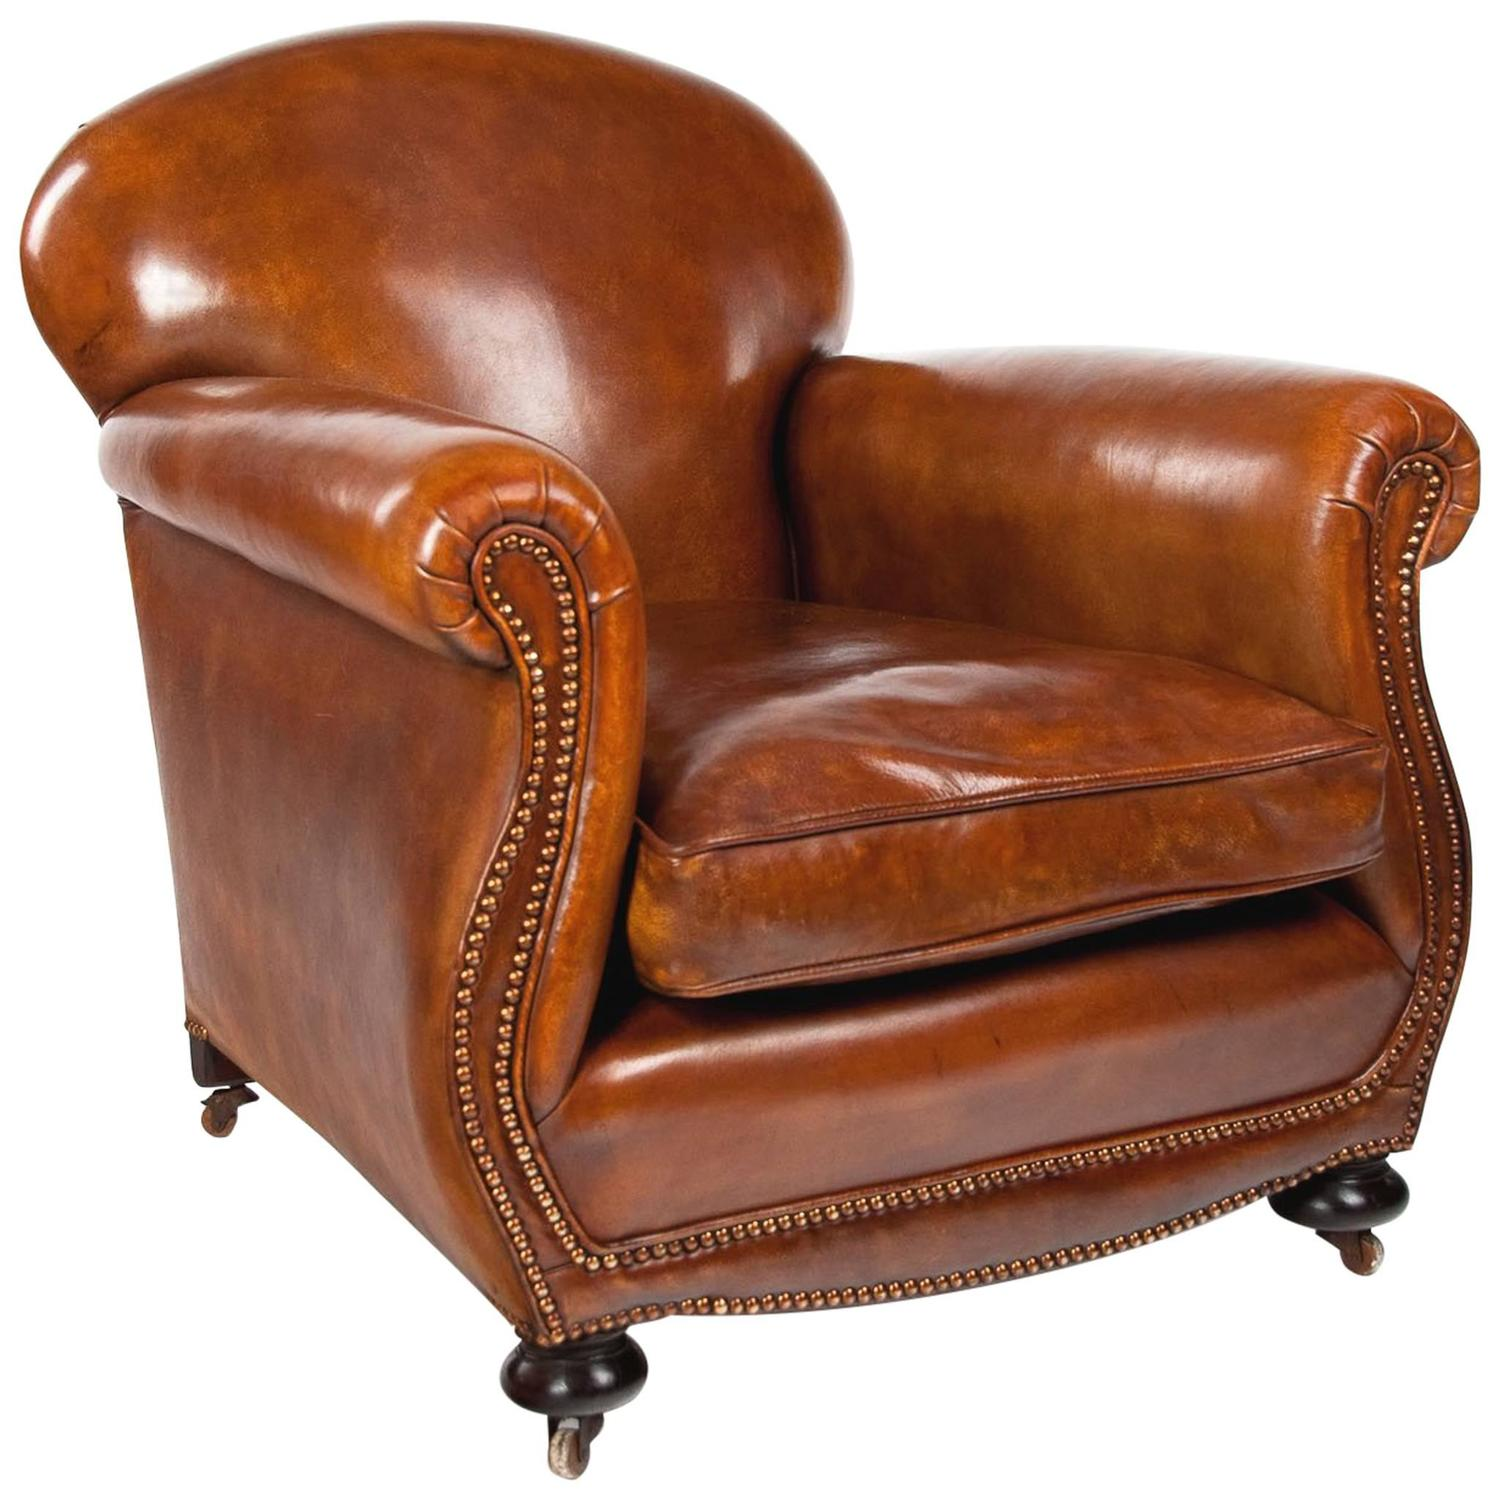 Quality Victorian Shaped Leather Club Armchair at 1stdibs